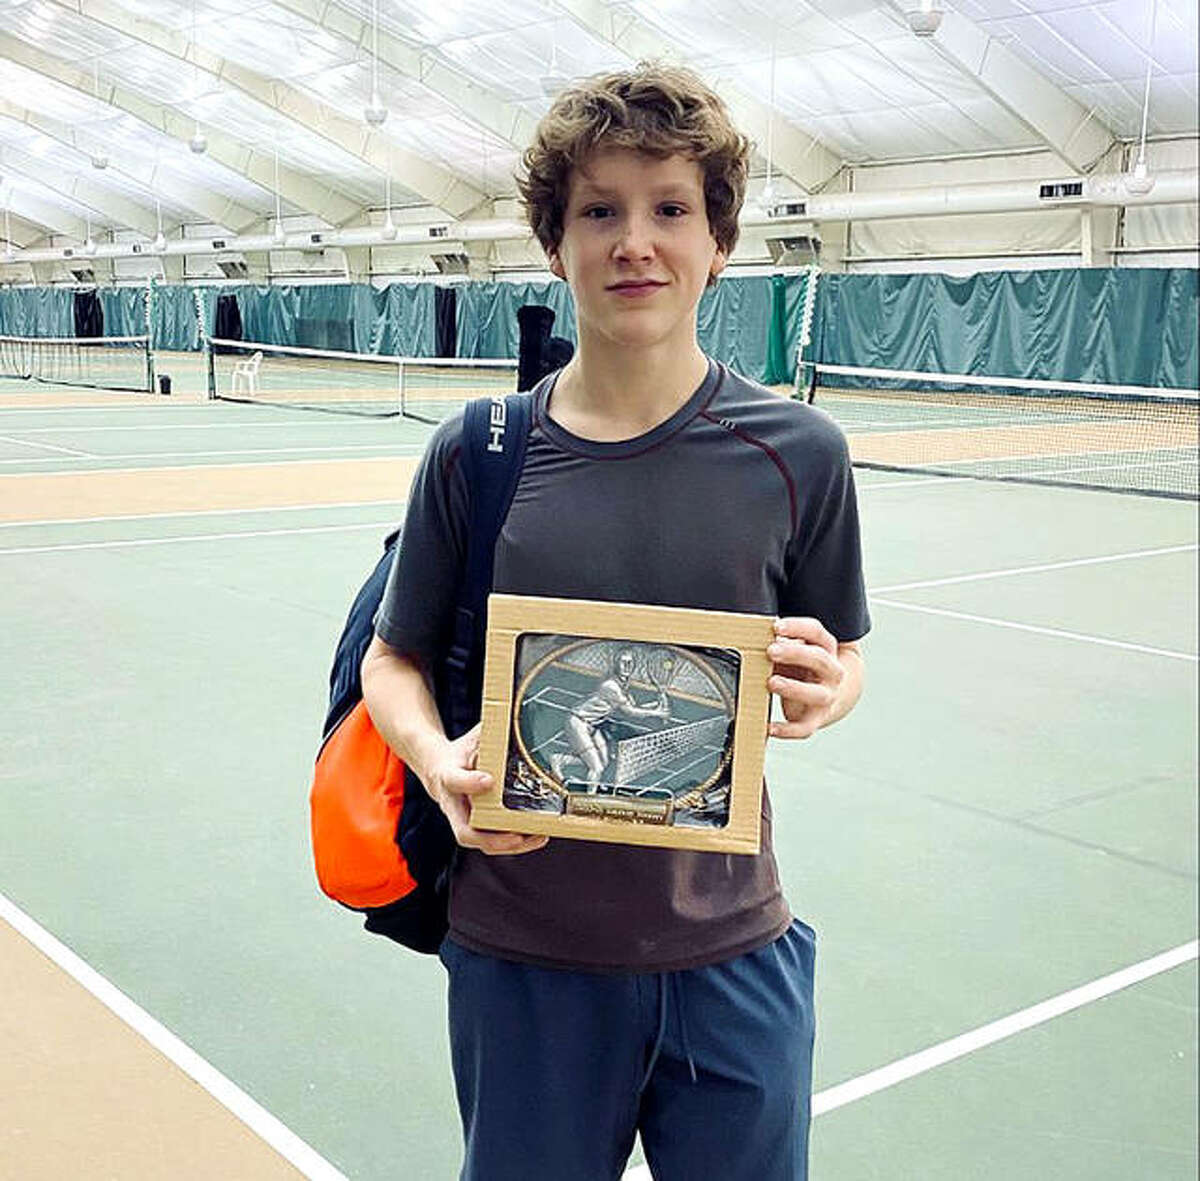 Bradley Bower, a freshman at Marquette Catholic High School, captured the championship of the 18 and Under Gateway Masters Tennis Championships Saturday night at the Chesterfield Athletic Club in St. Louis.